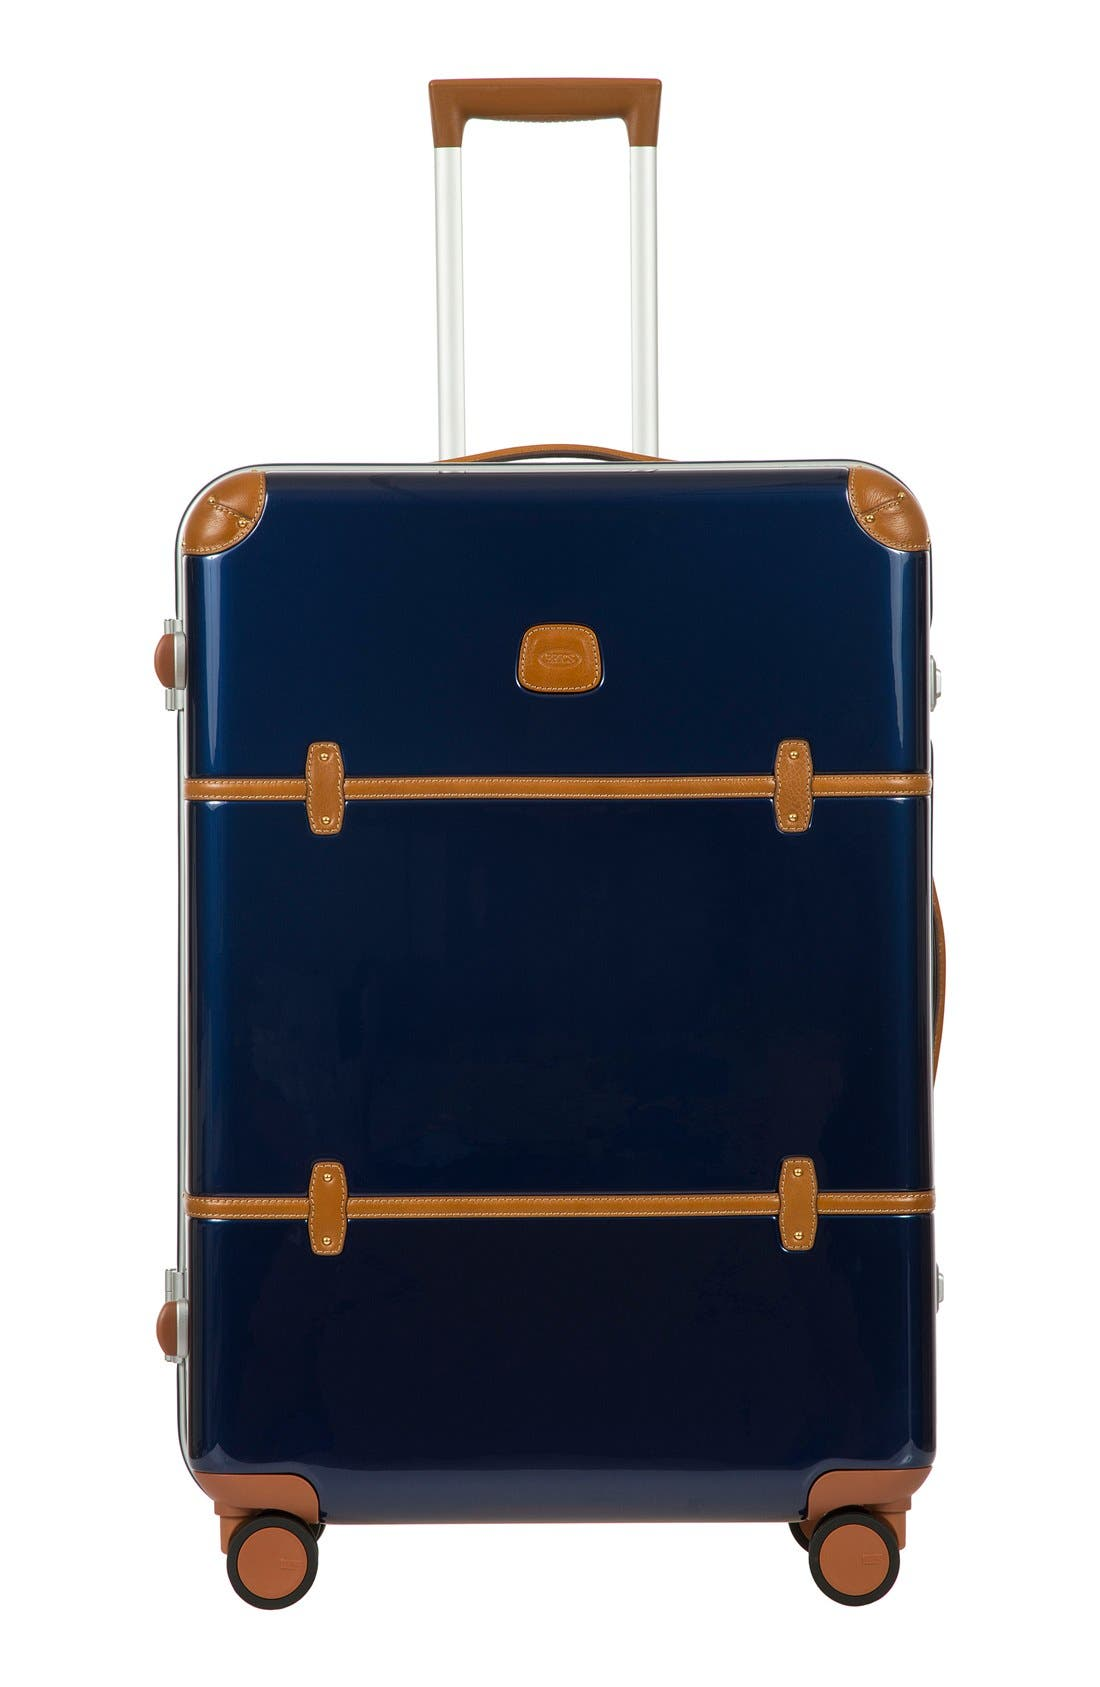 BRIC'S Bellagio Metallo 2.0 30 Inch Rolling Suitcase